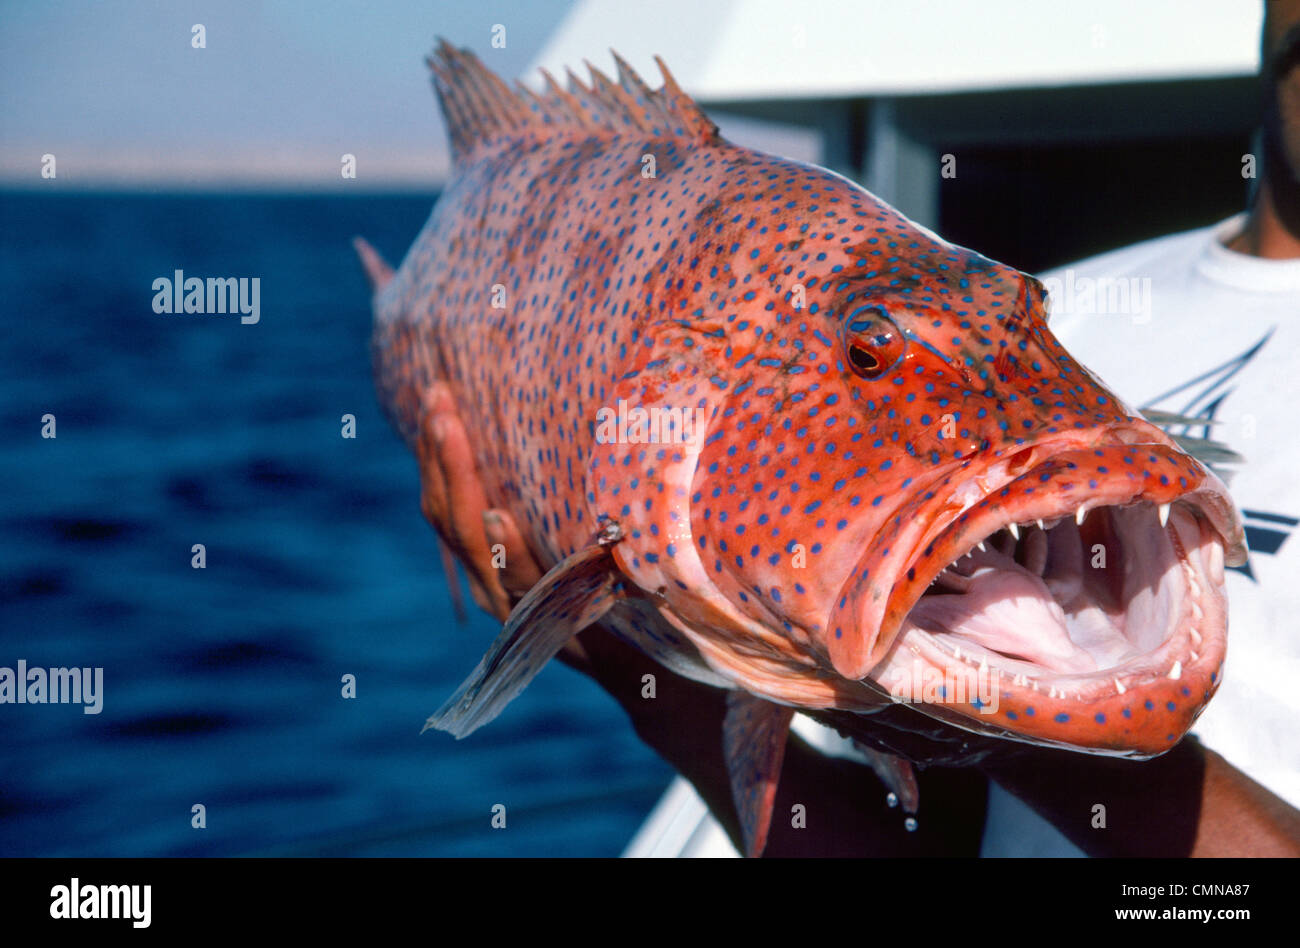 This huge and scary Coral grouper fish with sharp teeth ...